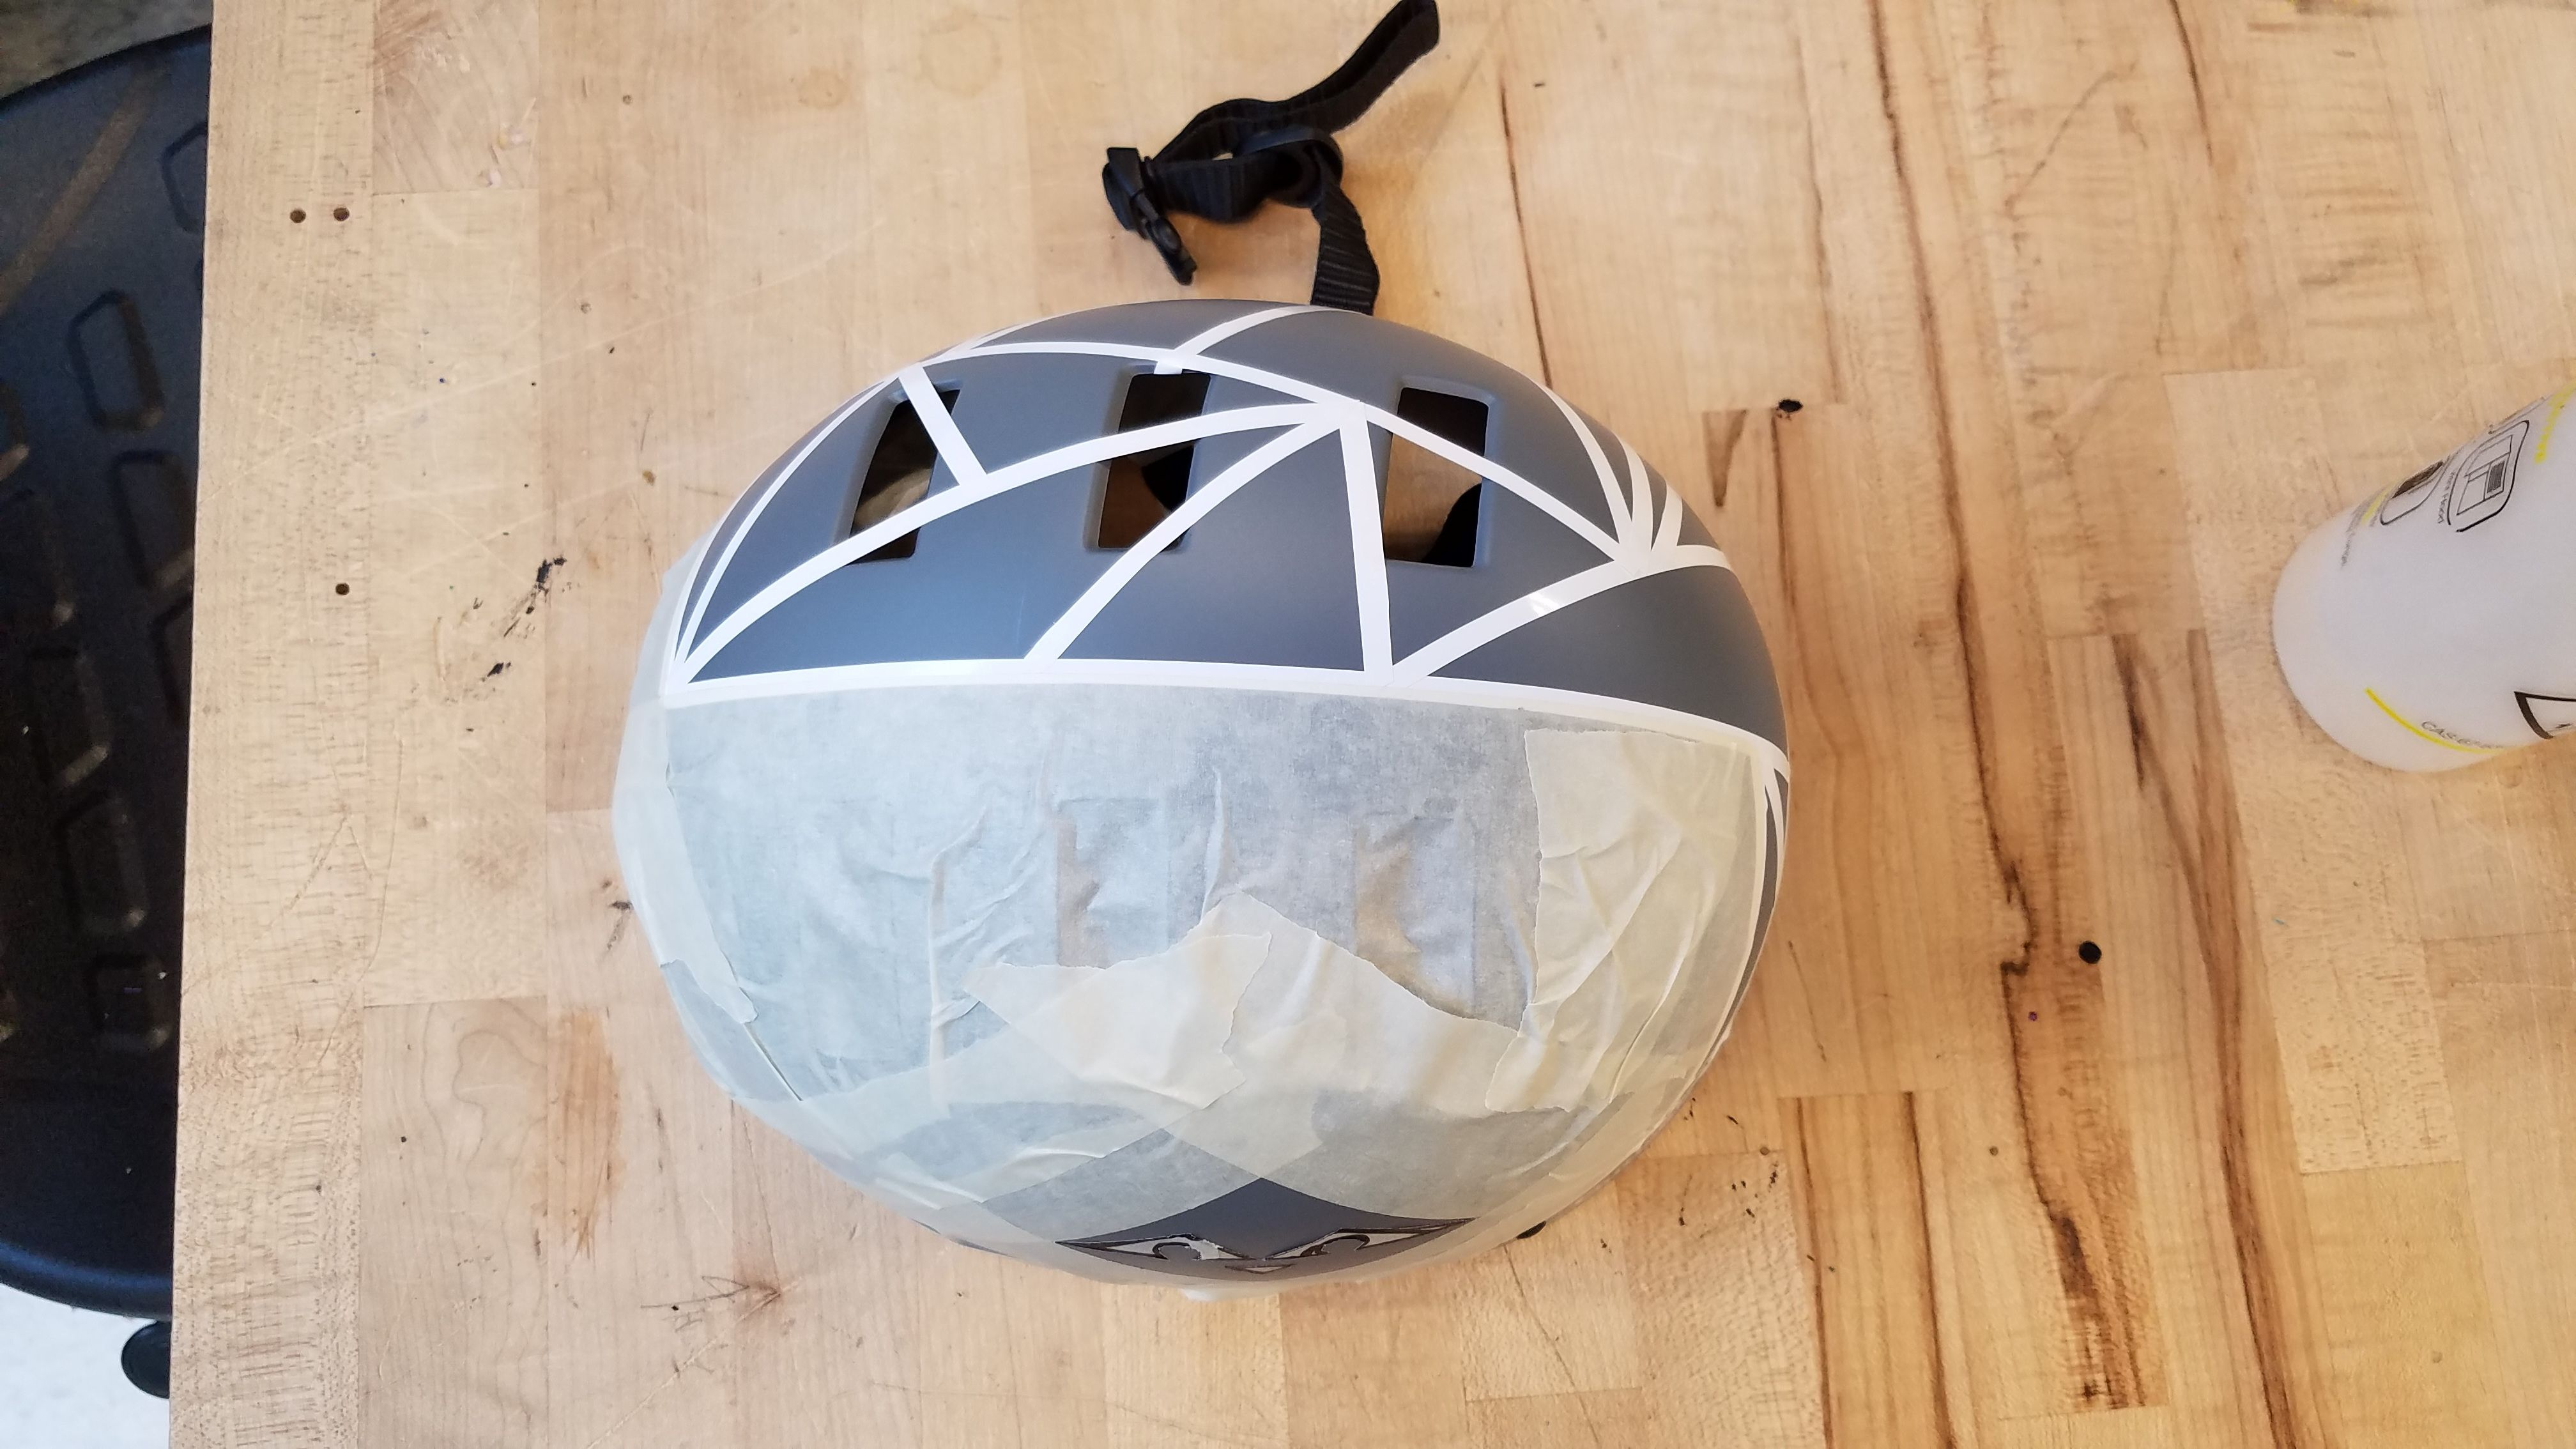 Picture of Protect the Rest of the Blank Side of the Helmet With Masking Tape.